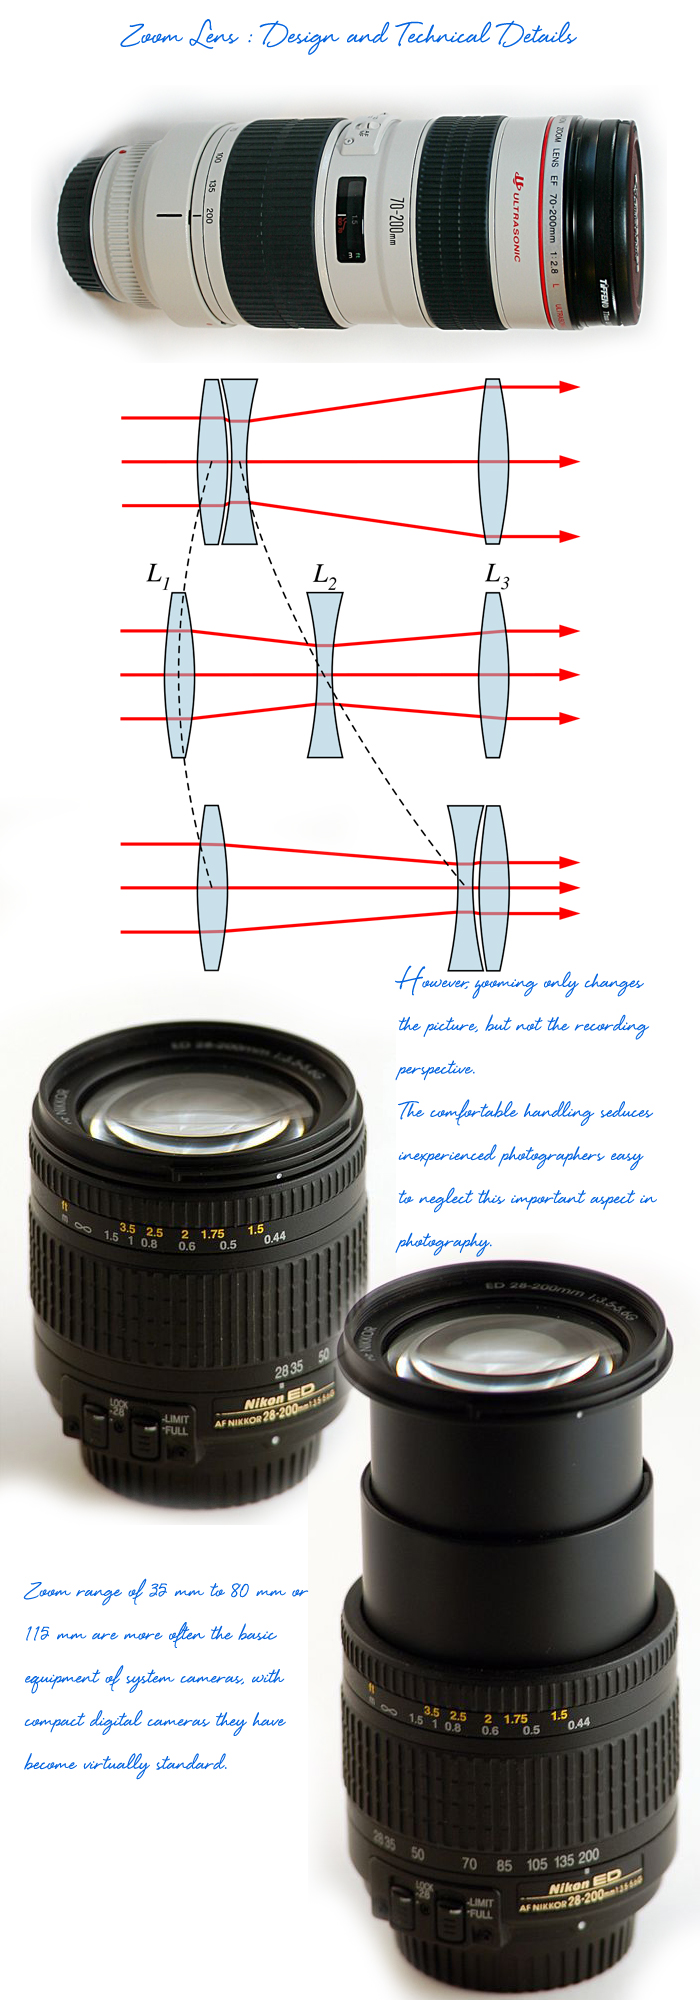 Zoom-Lens-Design-and-Technical-Details